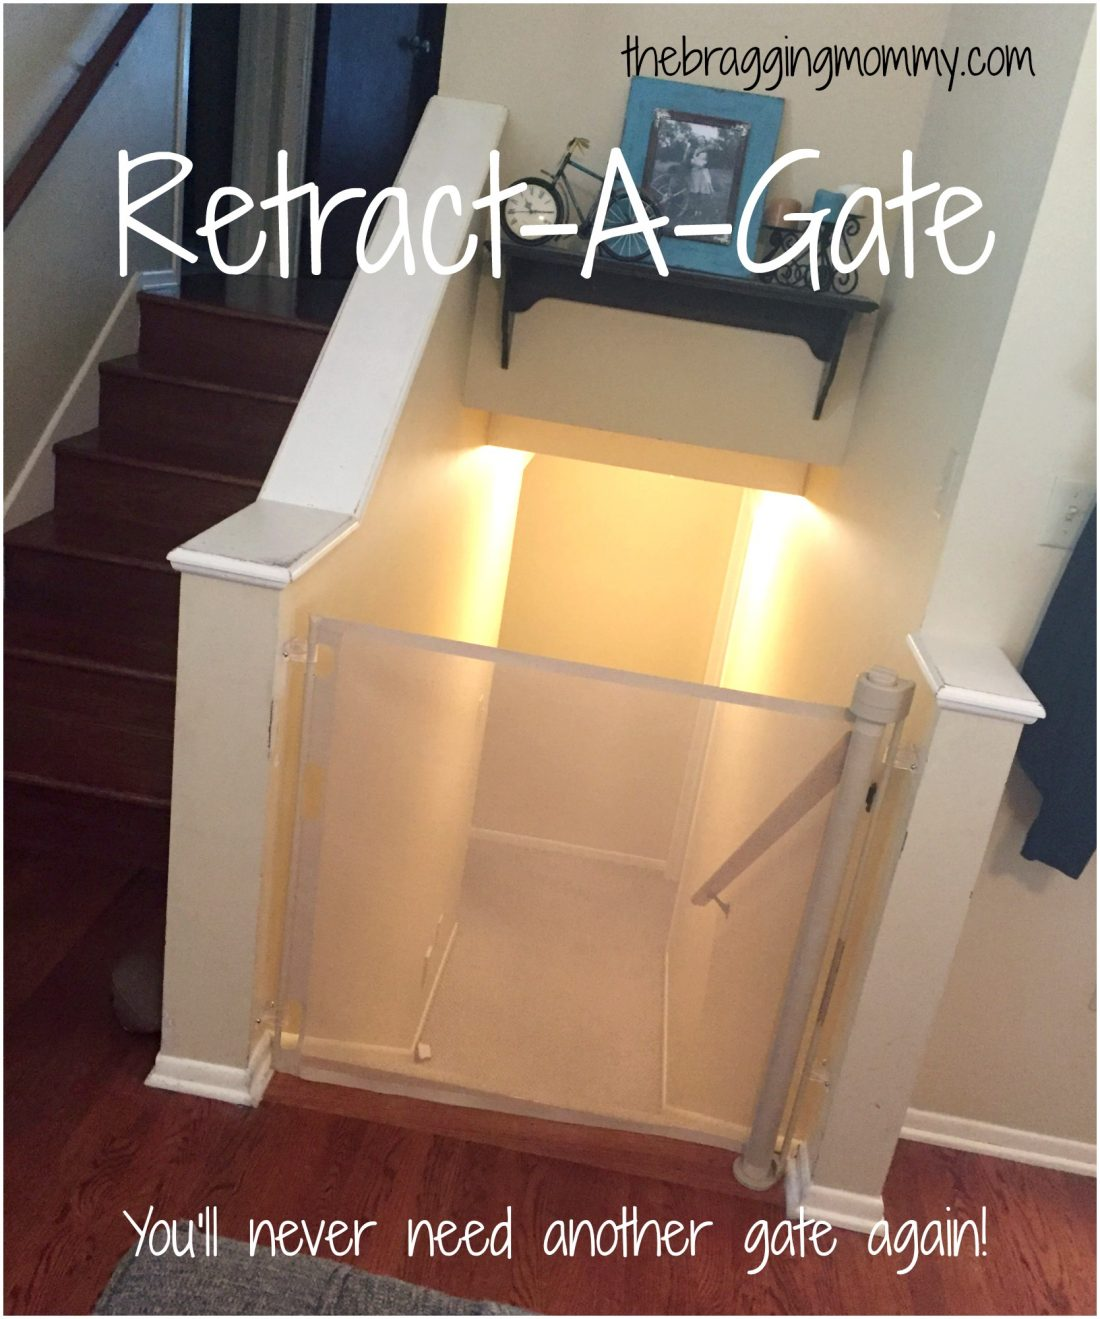 Smart Retract Retract A Gate Retractable Safety Gate For